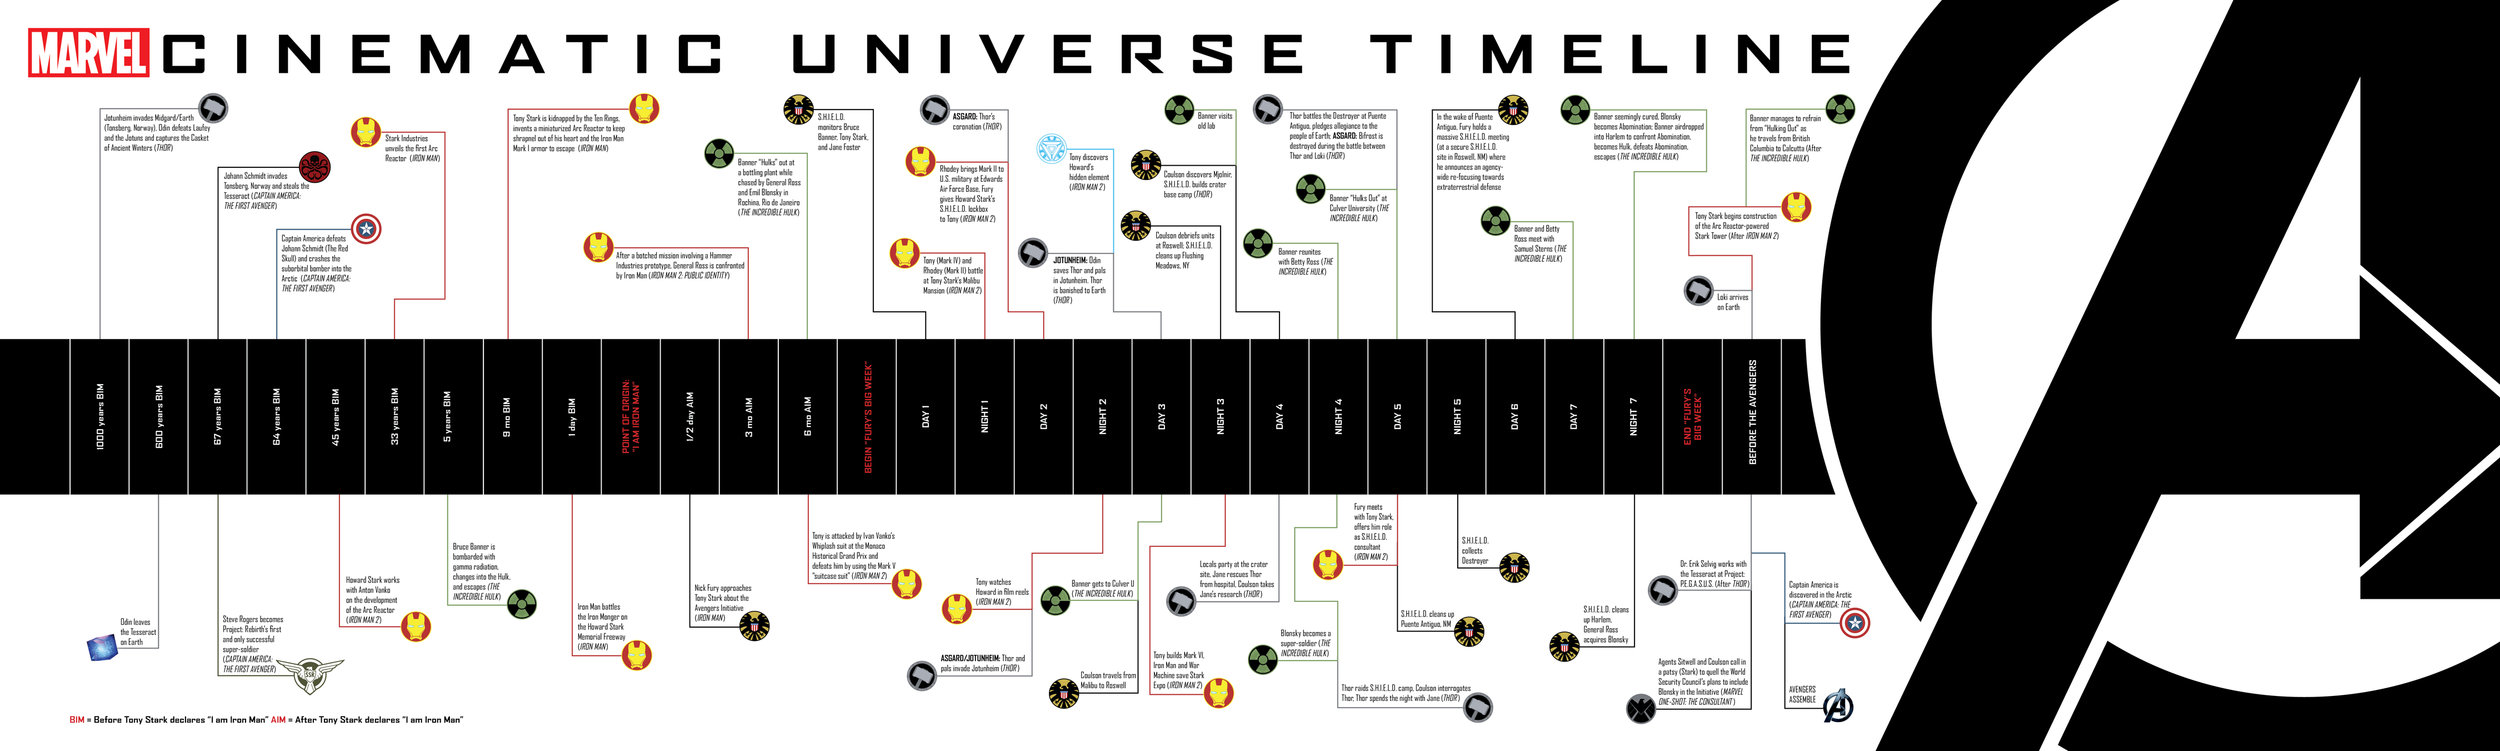 A timeline of the events leading up the The Avengers